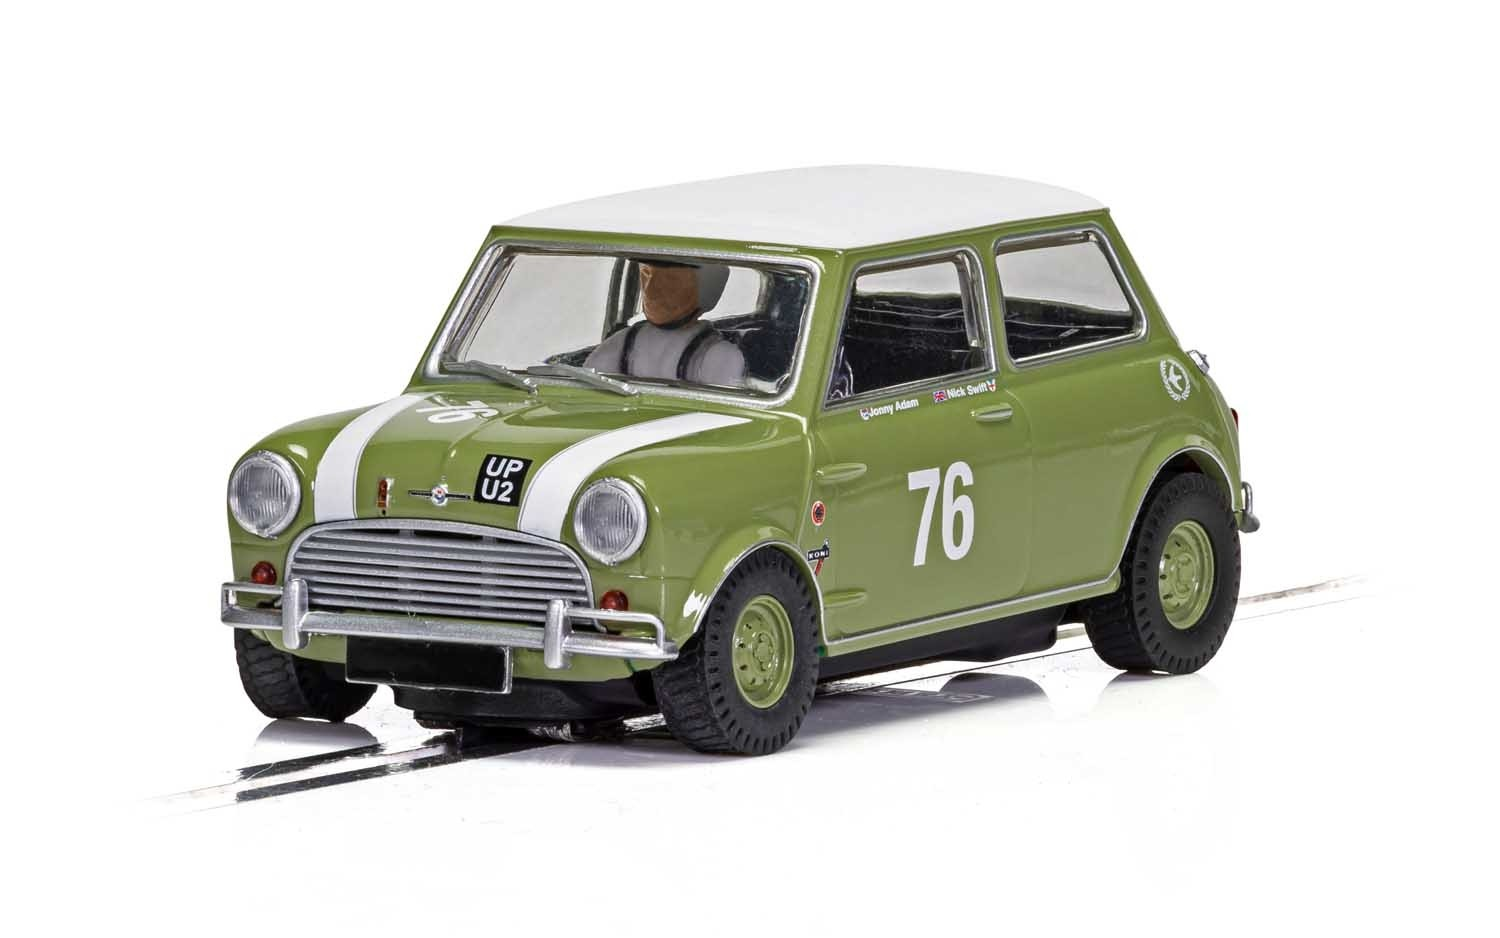 Austin Mini Cooper S, Goodwood 2018, Johnny Adam, Nick Swift 1/32 Slot Car